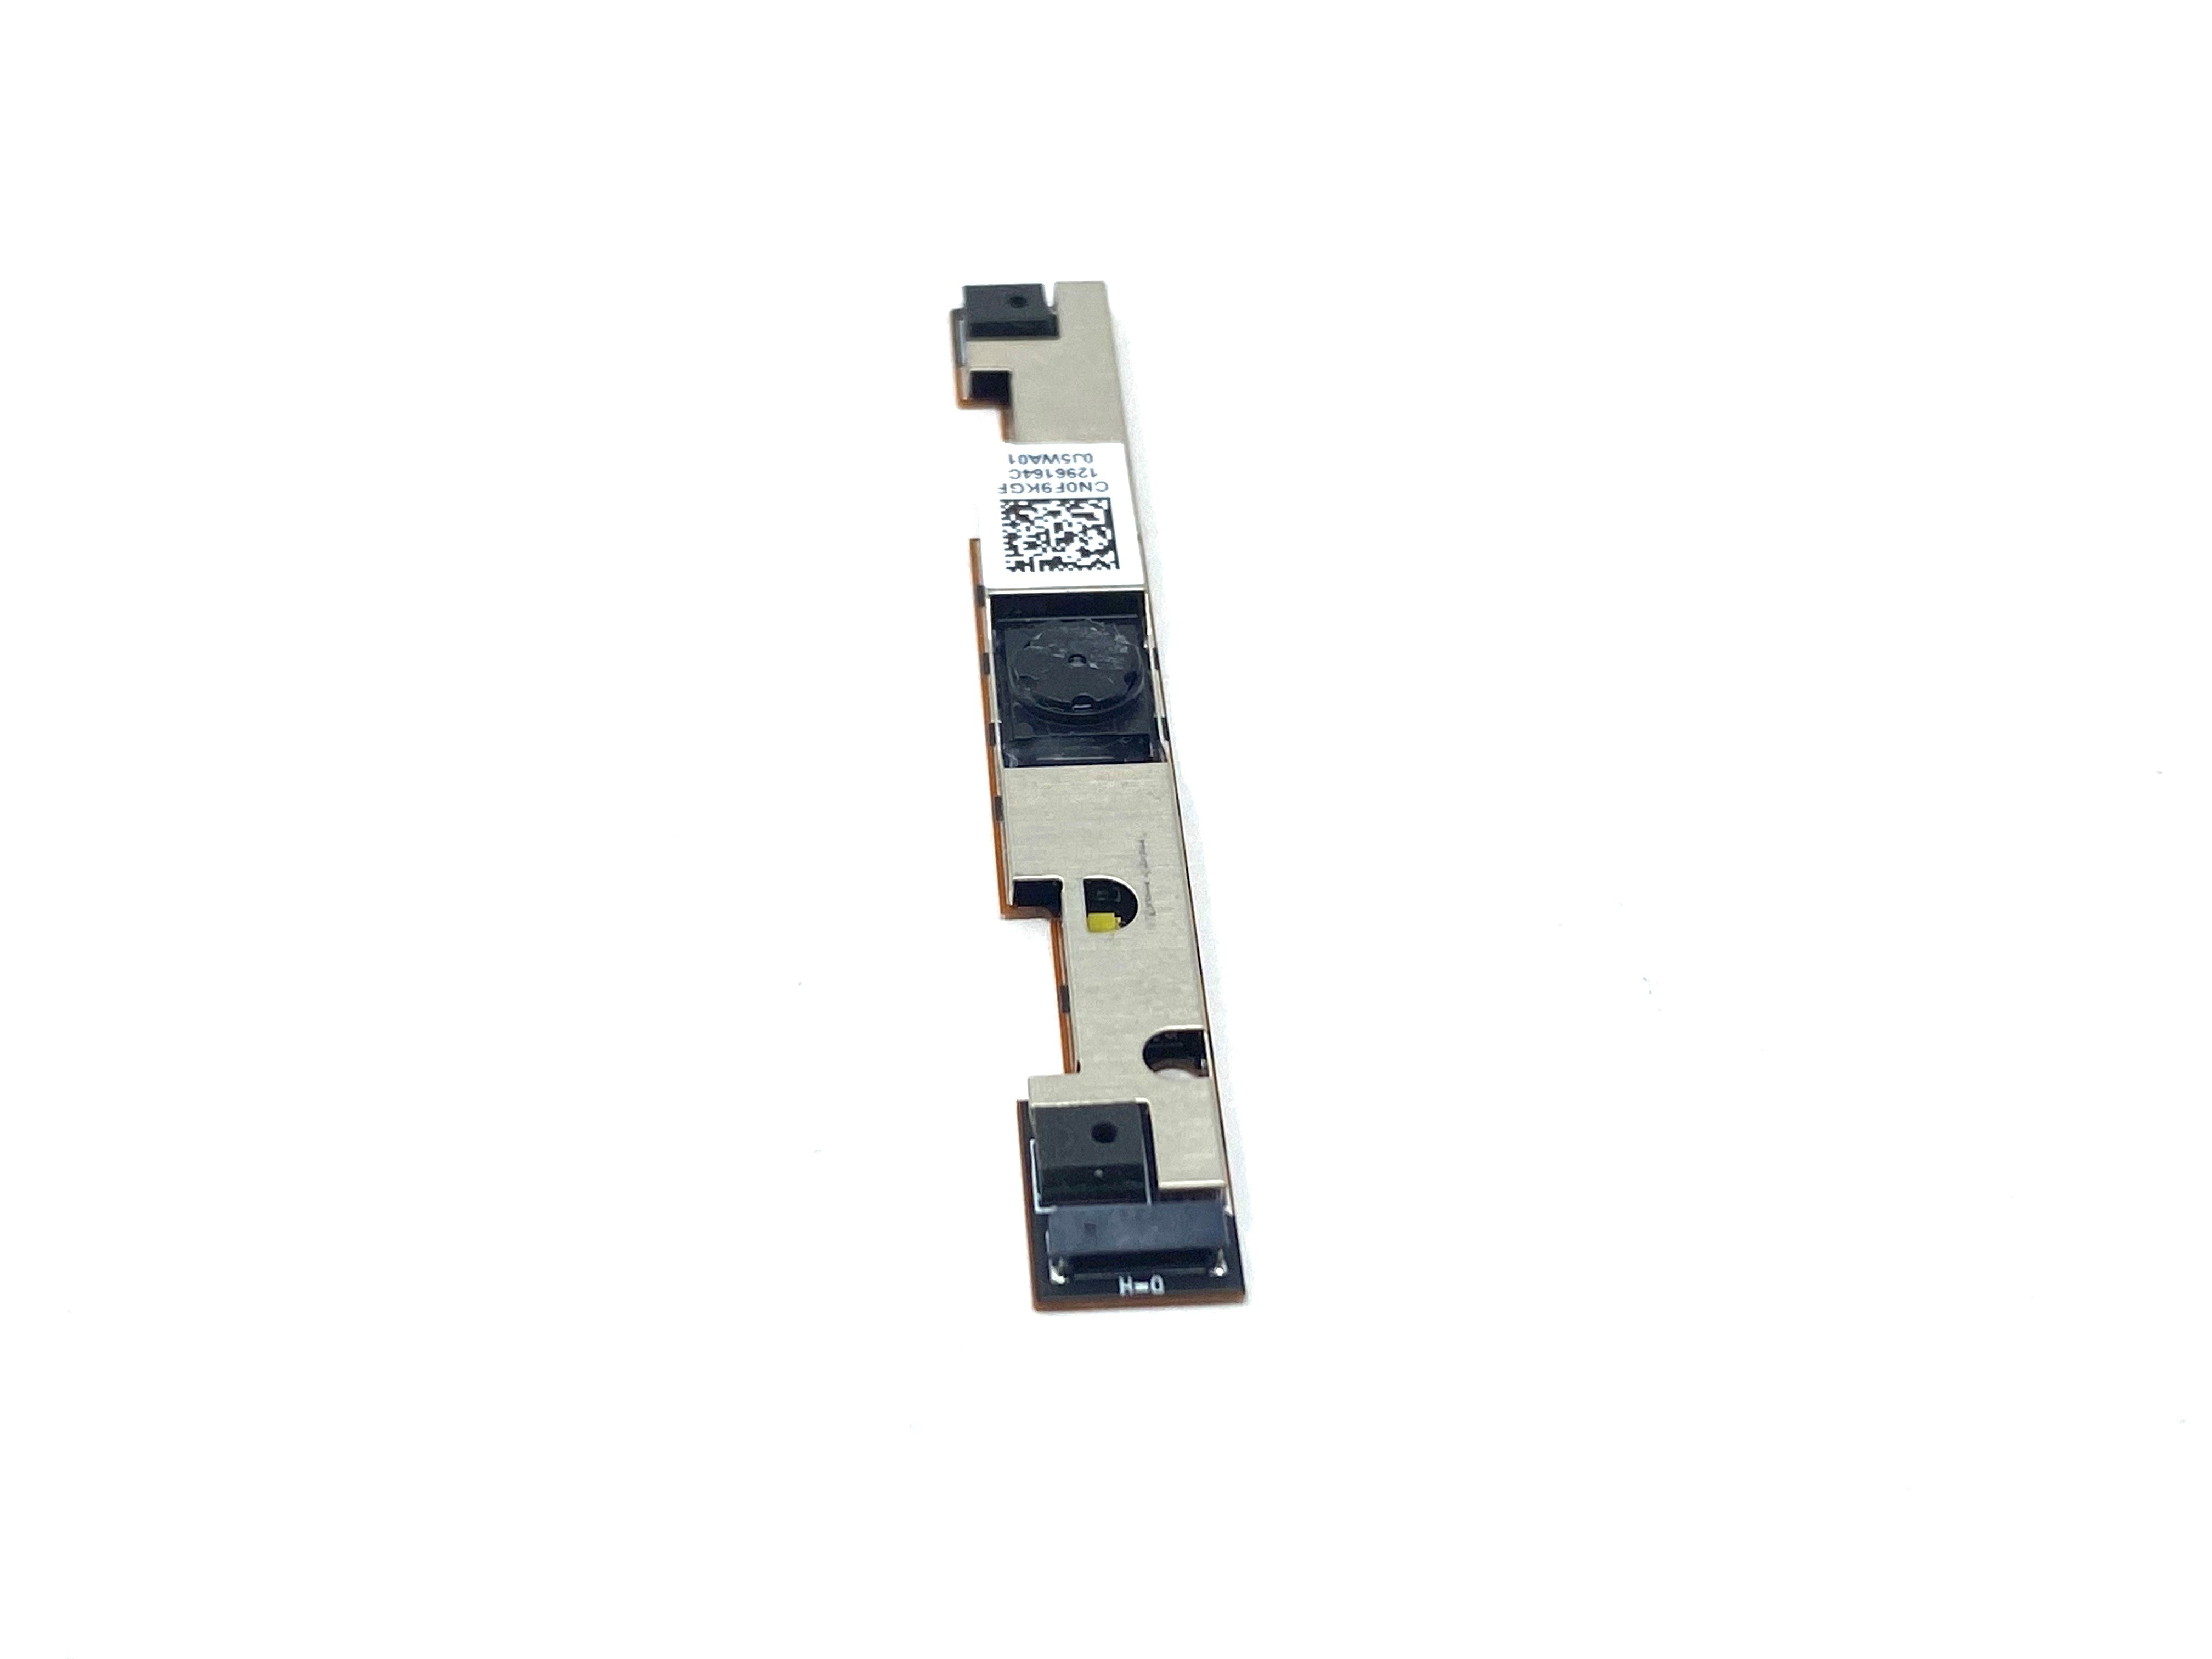 Dell Chromebook 11 3120 (P22T) Camera Microphone Assembly - F9KGF / 0F9KGF